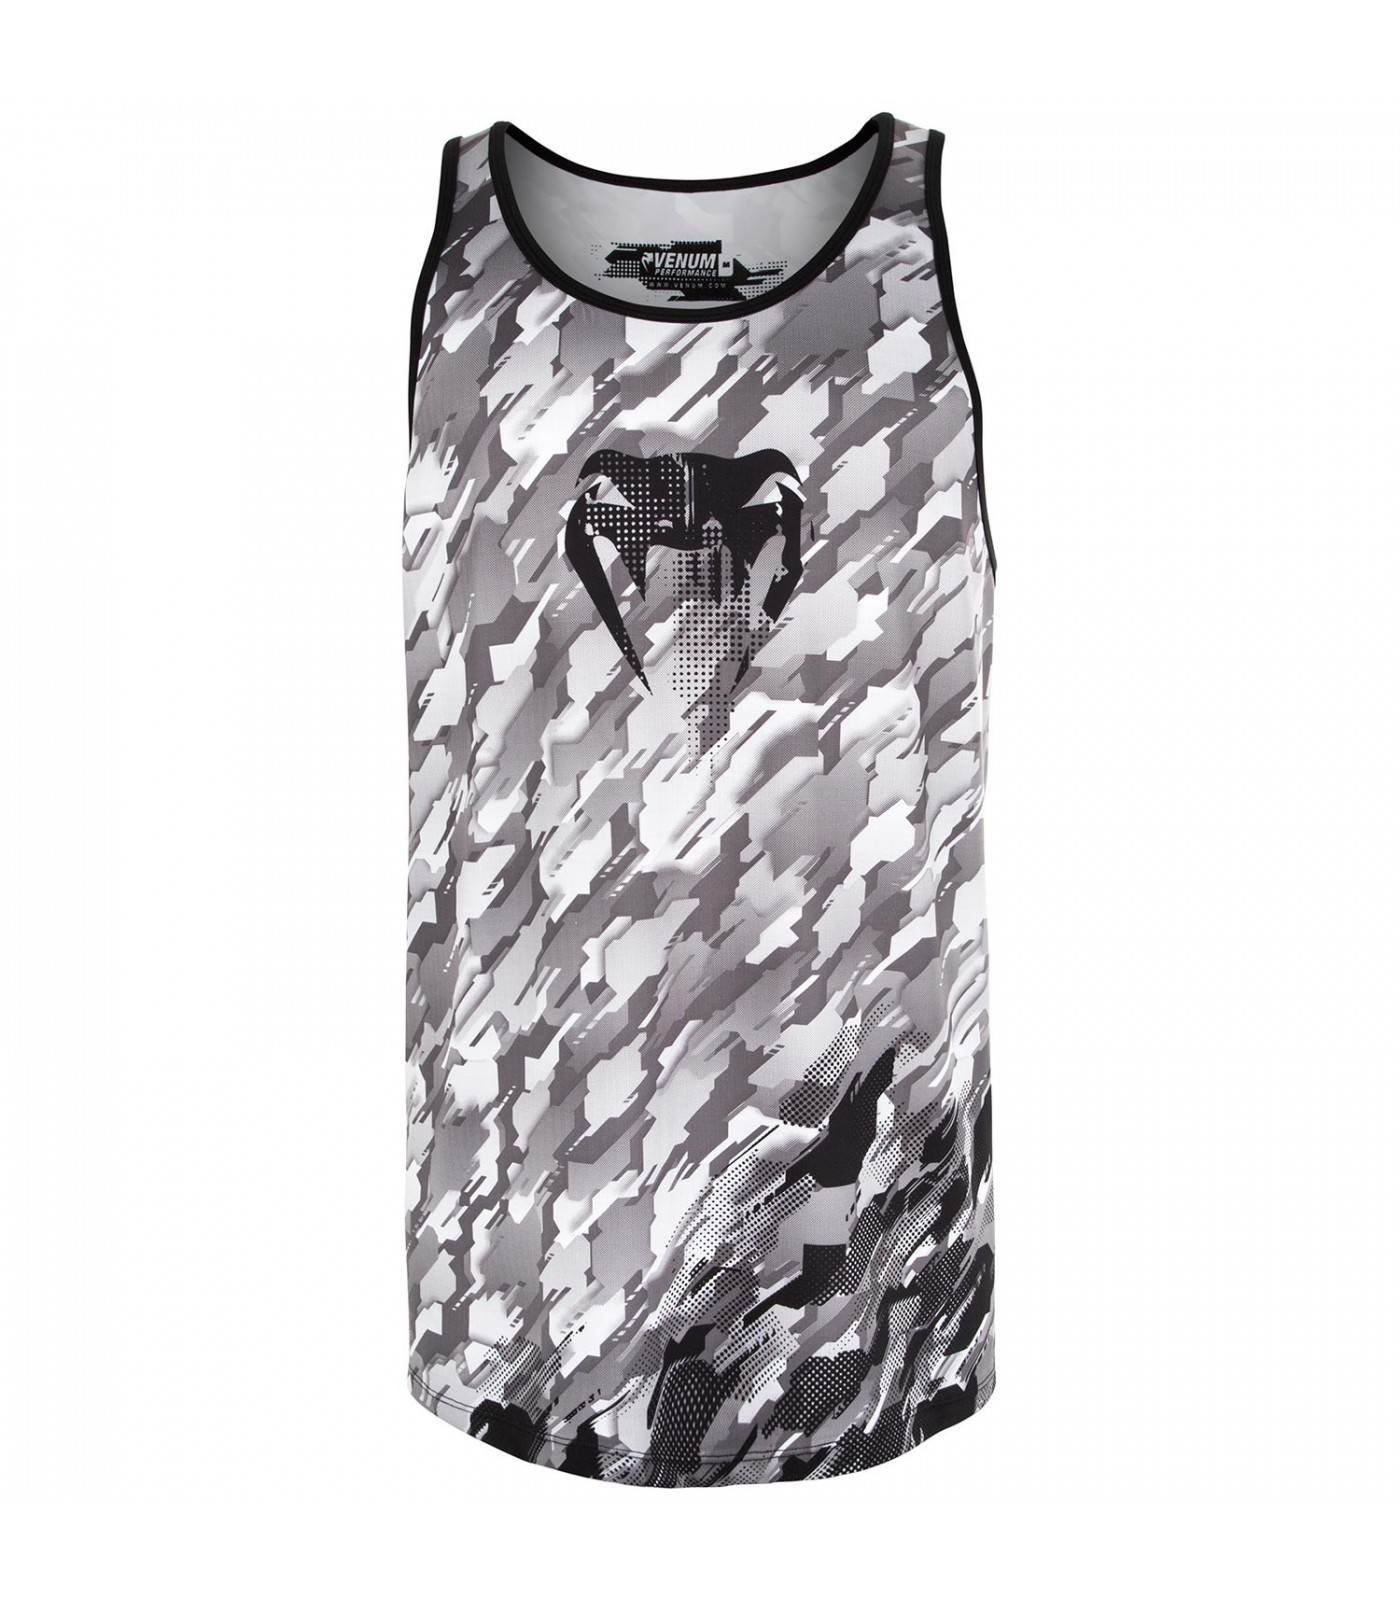 Потник - Venum Tecmo Tank Top - Black/Grey​